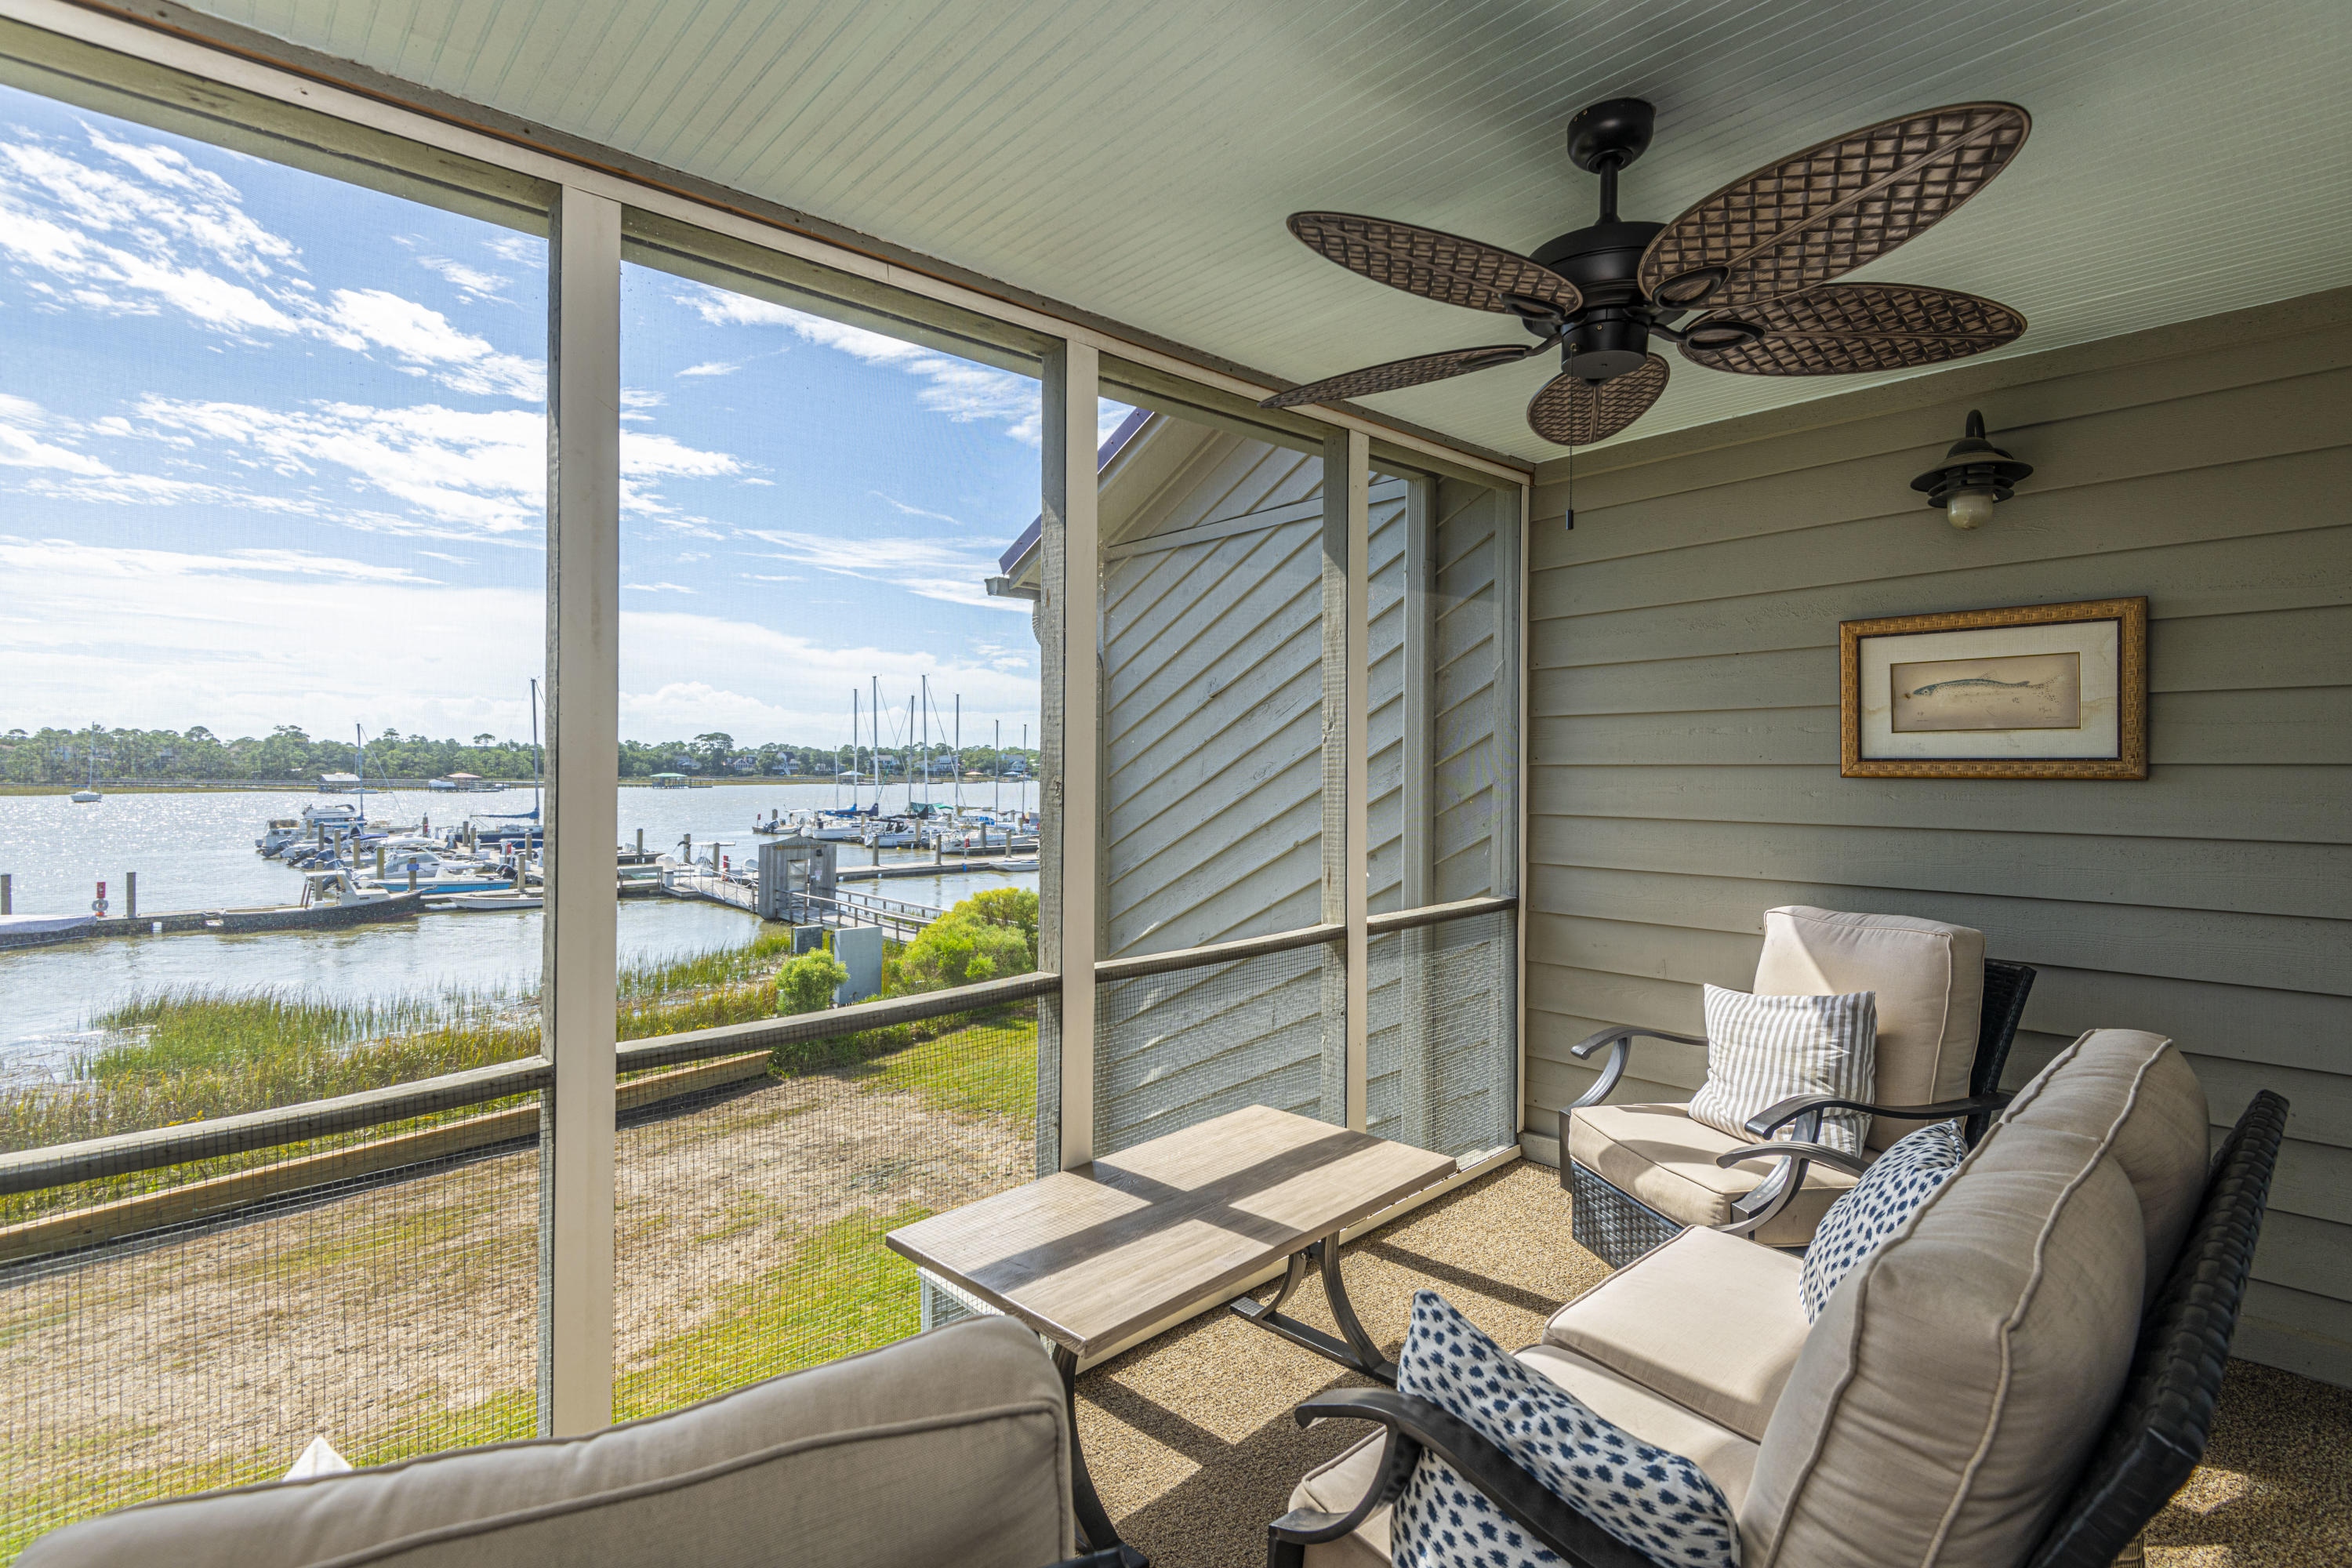 Mariners Cay Homes For Sale - 60 Mariners Cay, Folly Beach, SC - 10